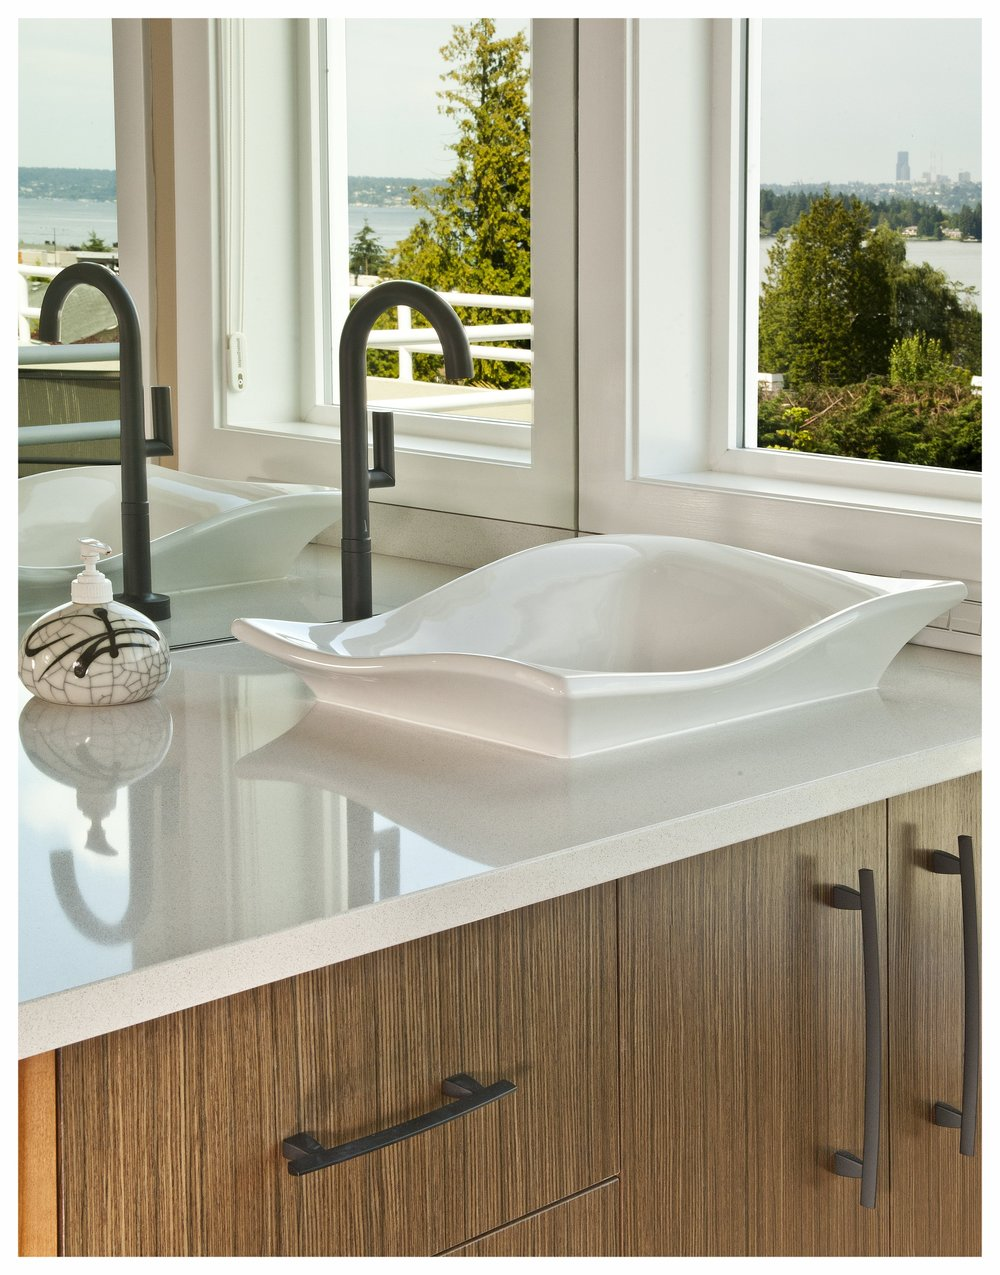 Kirkland Contemporary Master Bath 7 (2).jpg